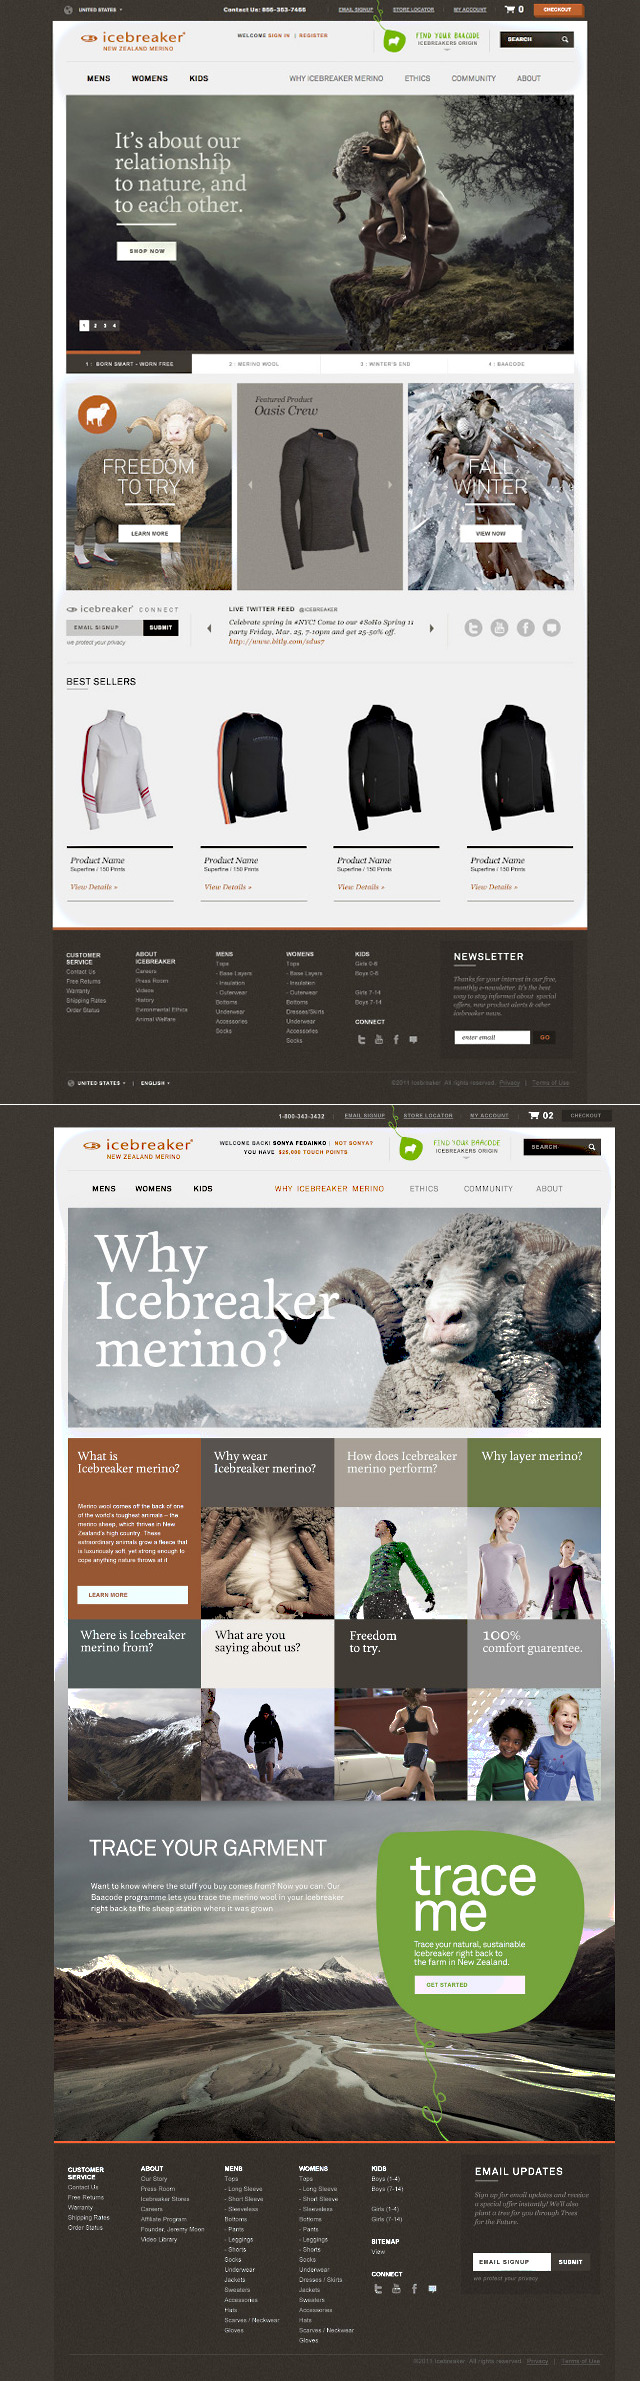 Brian Brooks Design Art Direction Ky Or Mn Web Design User Interface Web Design Projects Interactive Design